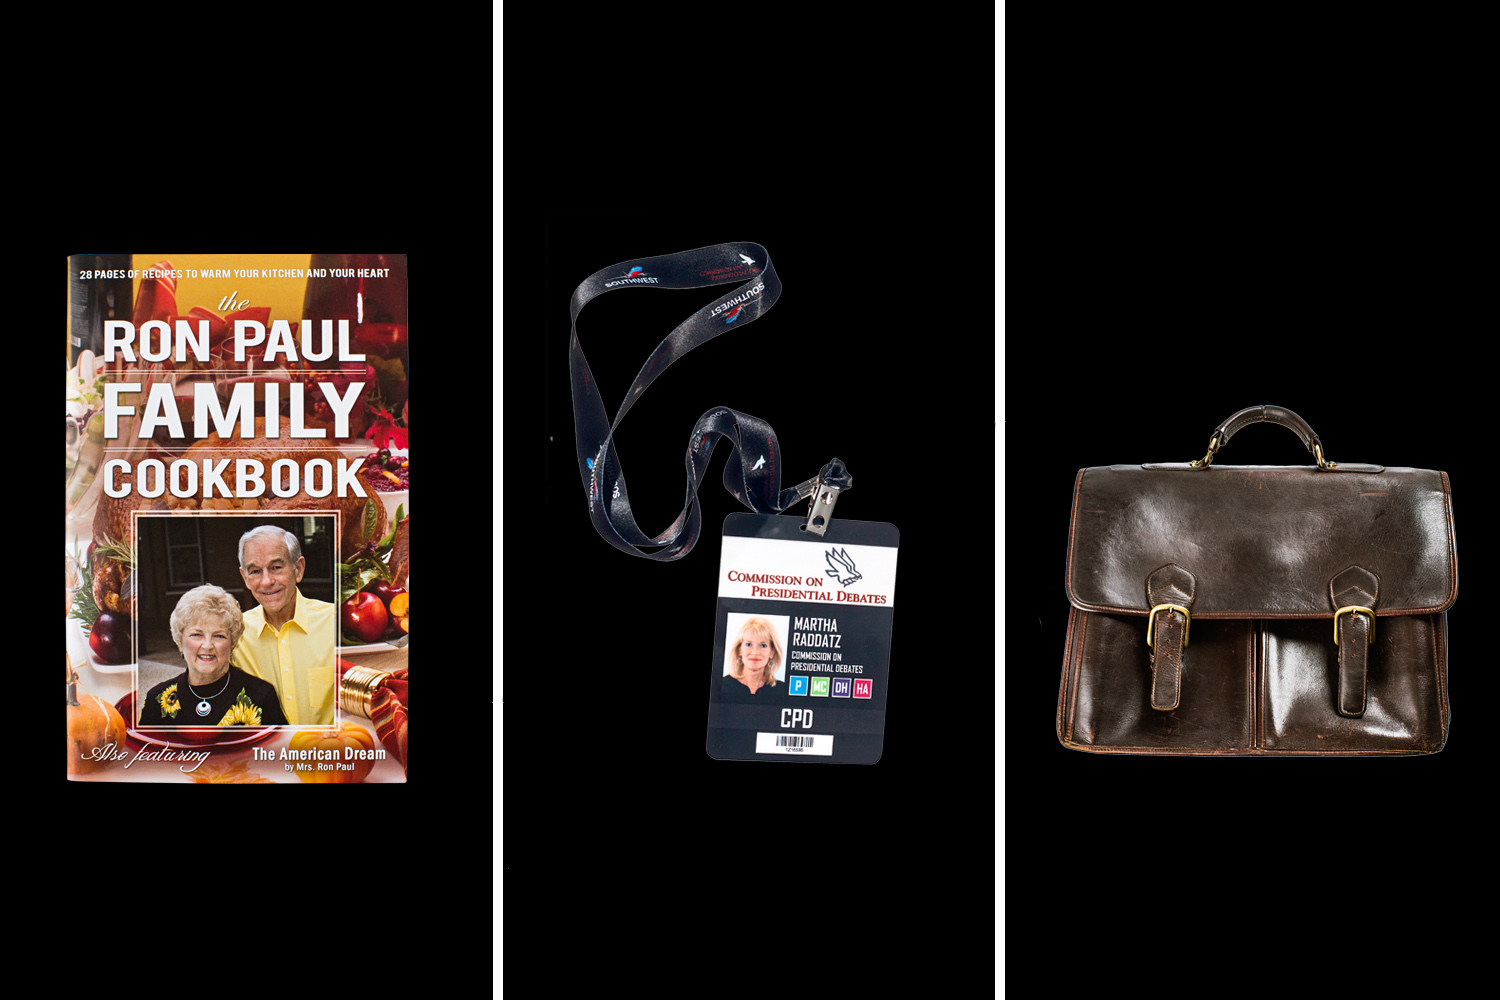 Ron Paul Cookbook                               Sold by the campaign of the three-time presidential candidate.                                                              Martha Raddatz's Press Pass                               Martha Raddatz of ABC won high marks for keeping the always aerobic Biden and the wonky Ryan focused during their Oct. 11 debate.                                                               Jon Huntsman's Briefcase                                The former Utah ­governor and ambassador to China was rarely without this Aston leather briefcase on the campaign trail.